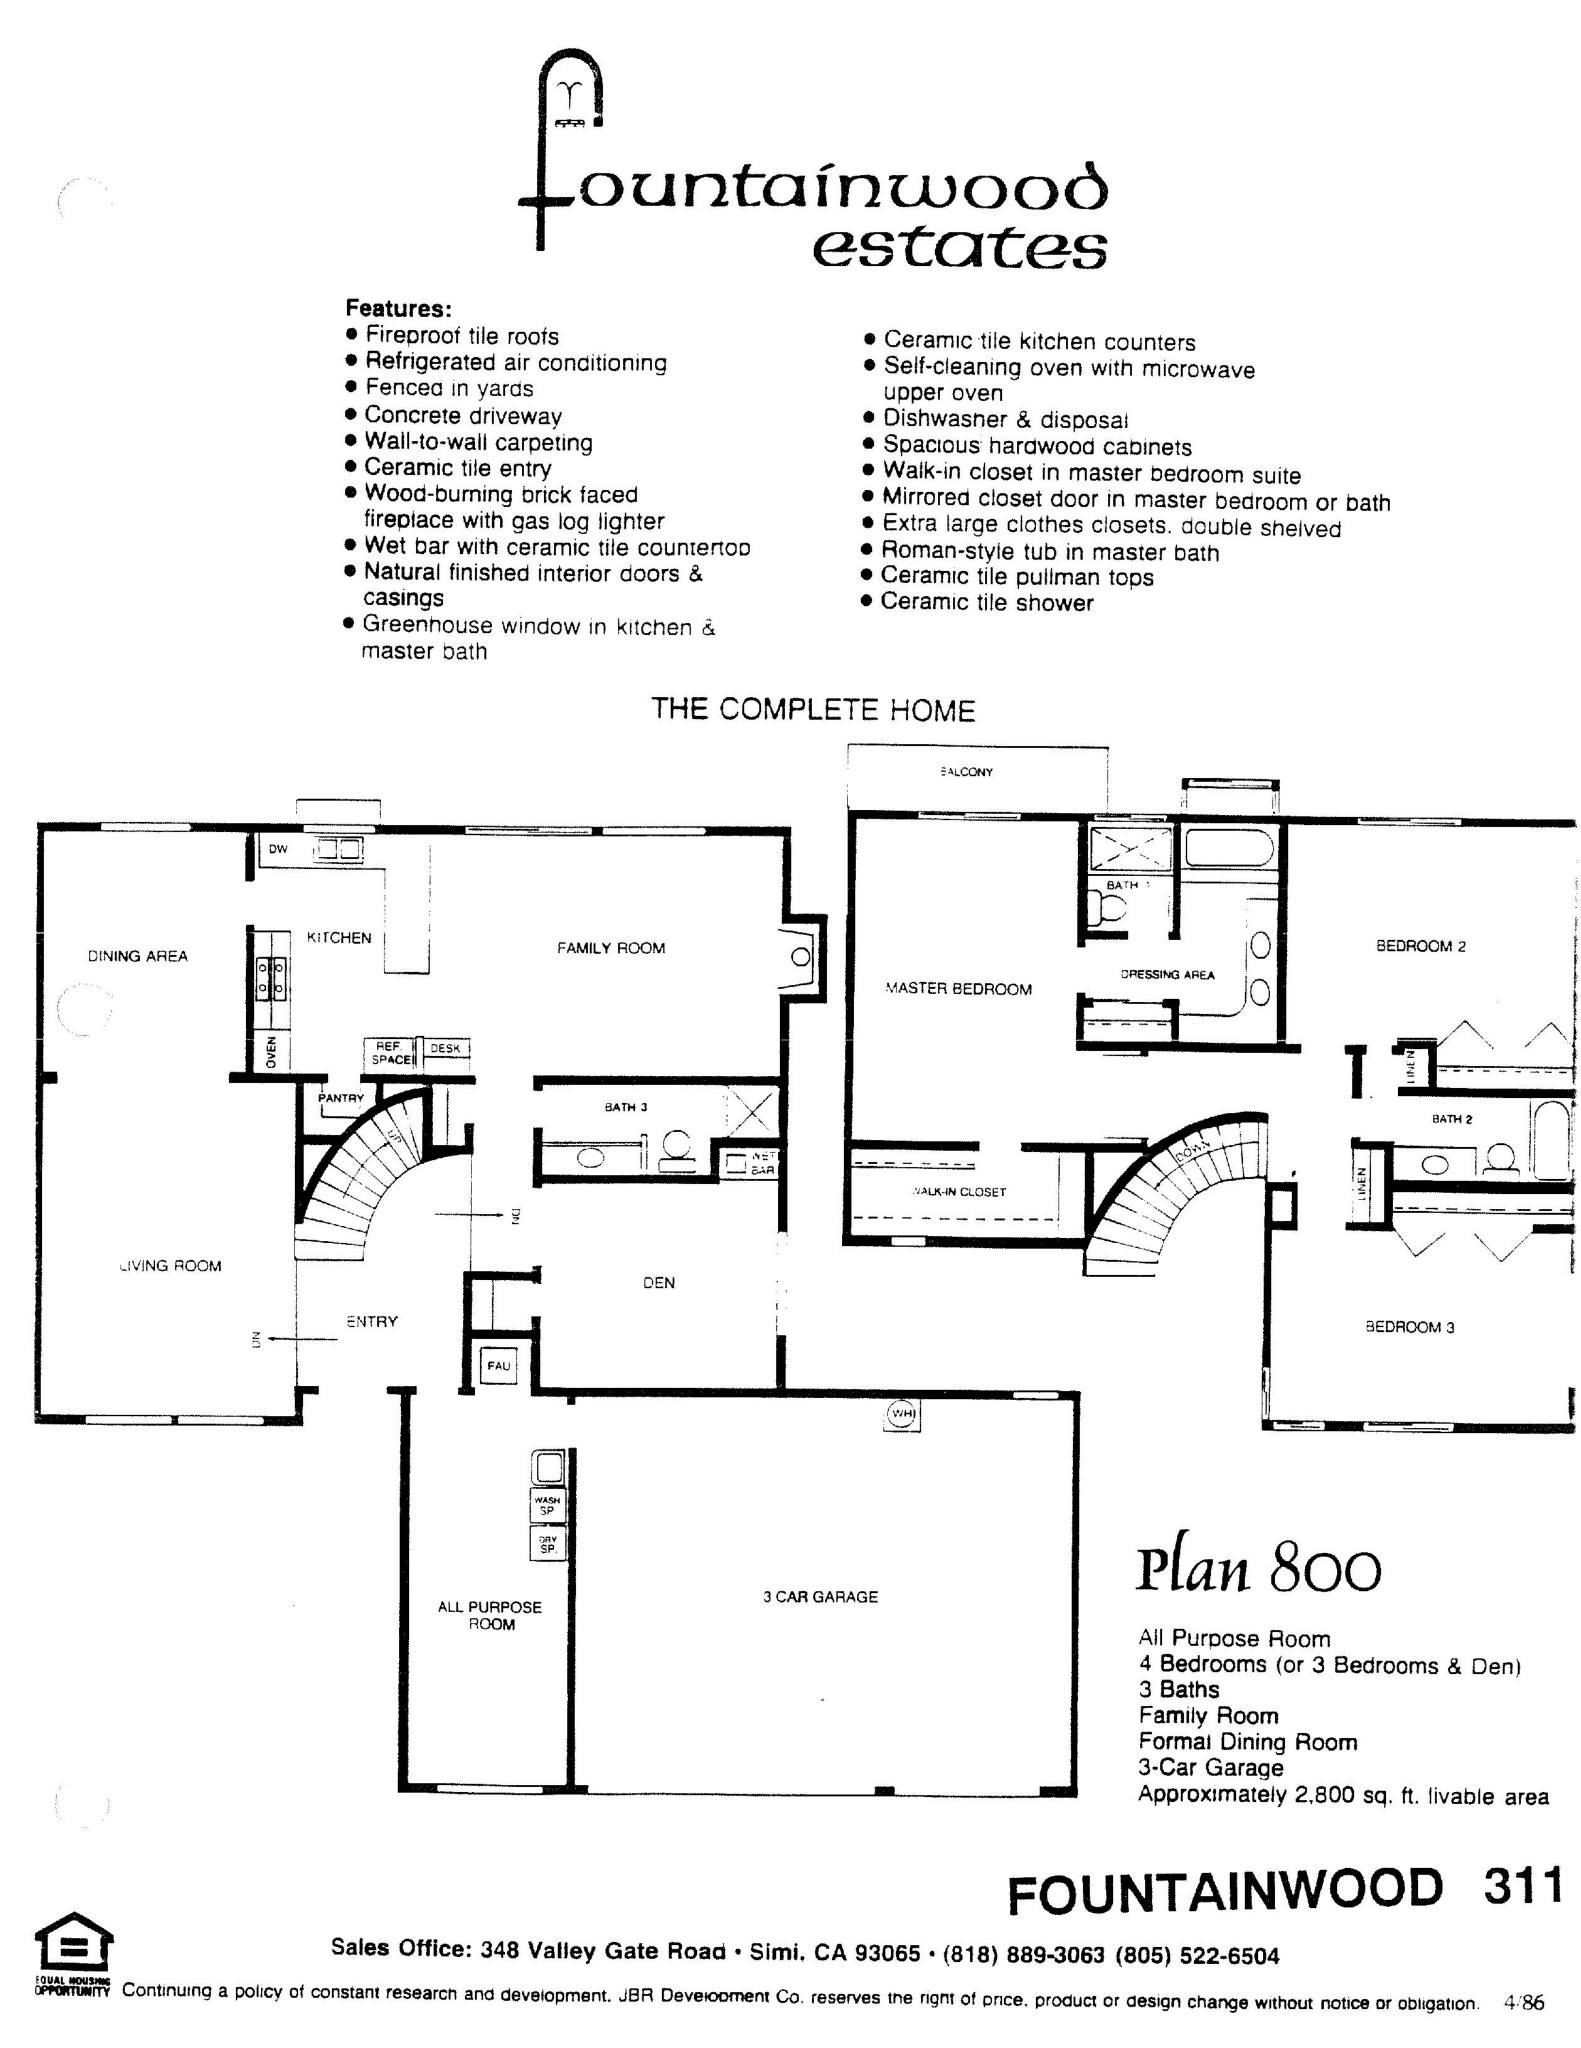 Fountainwood Estates - Plan 800